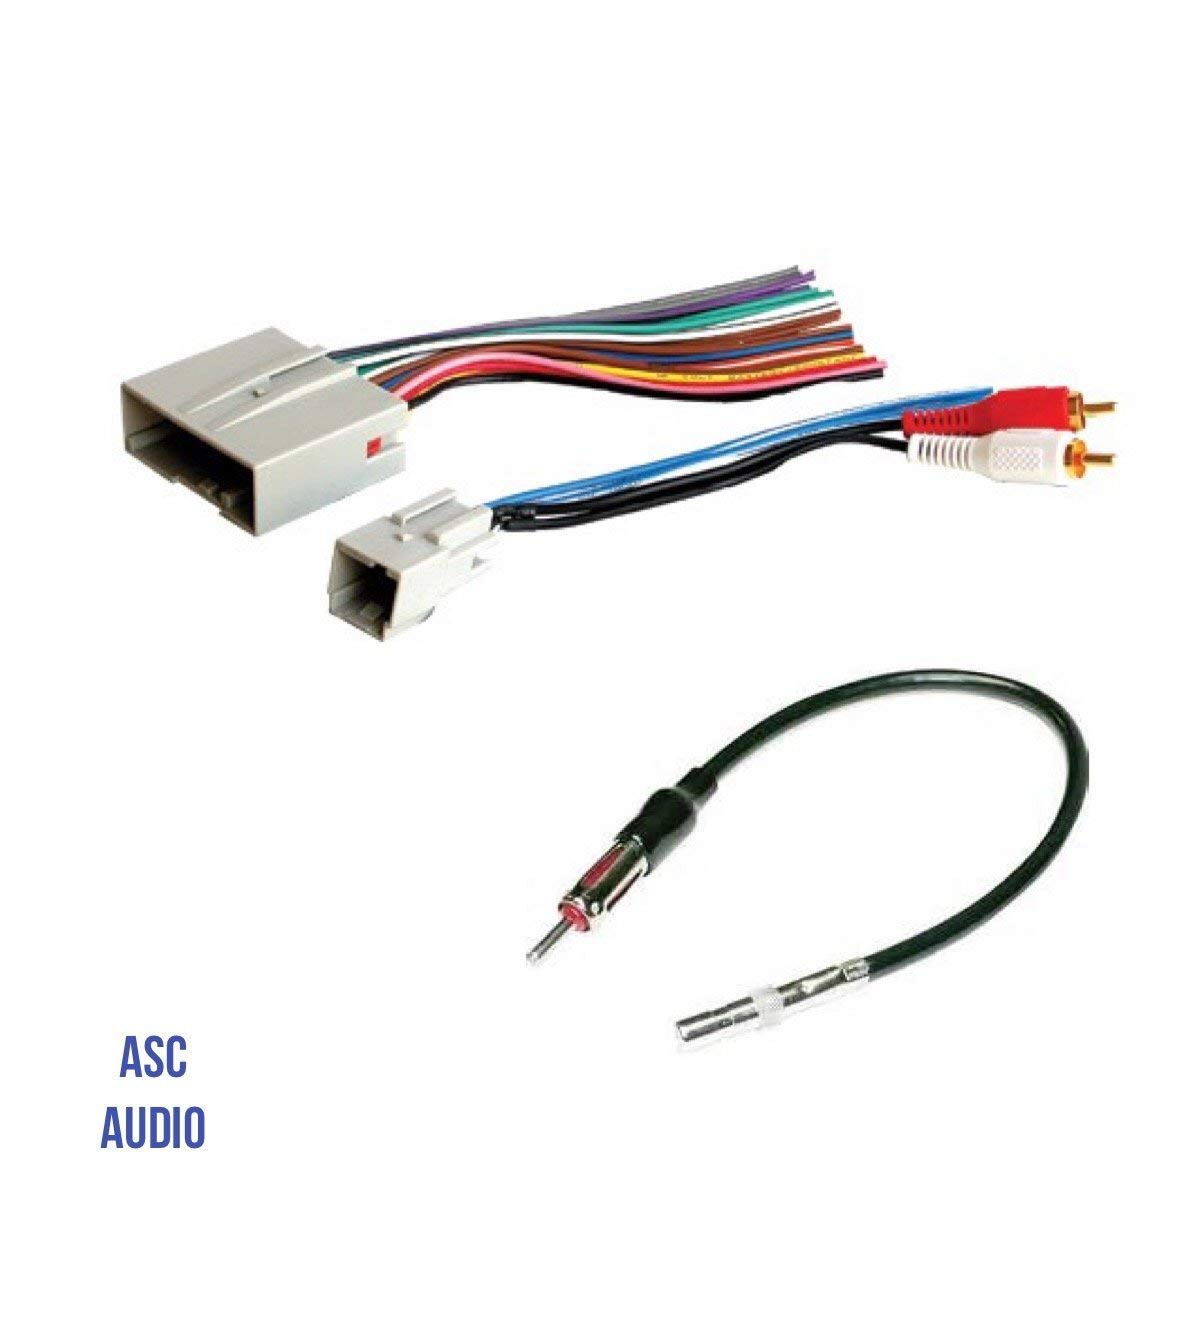 Amazon.com: ASC Audio Car Stereo Wire Harness and Antenna Adapter to  install an Aftermarket Radio for some Ford Lincoln Mazda Mercury Vehicles-  Retains ...